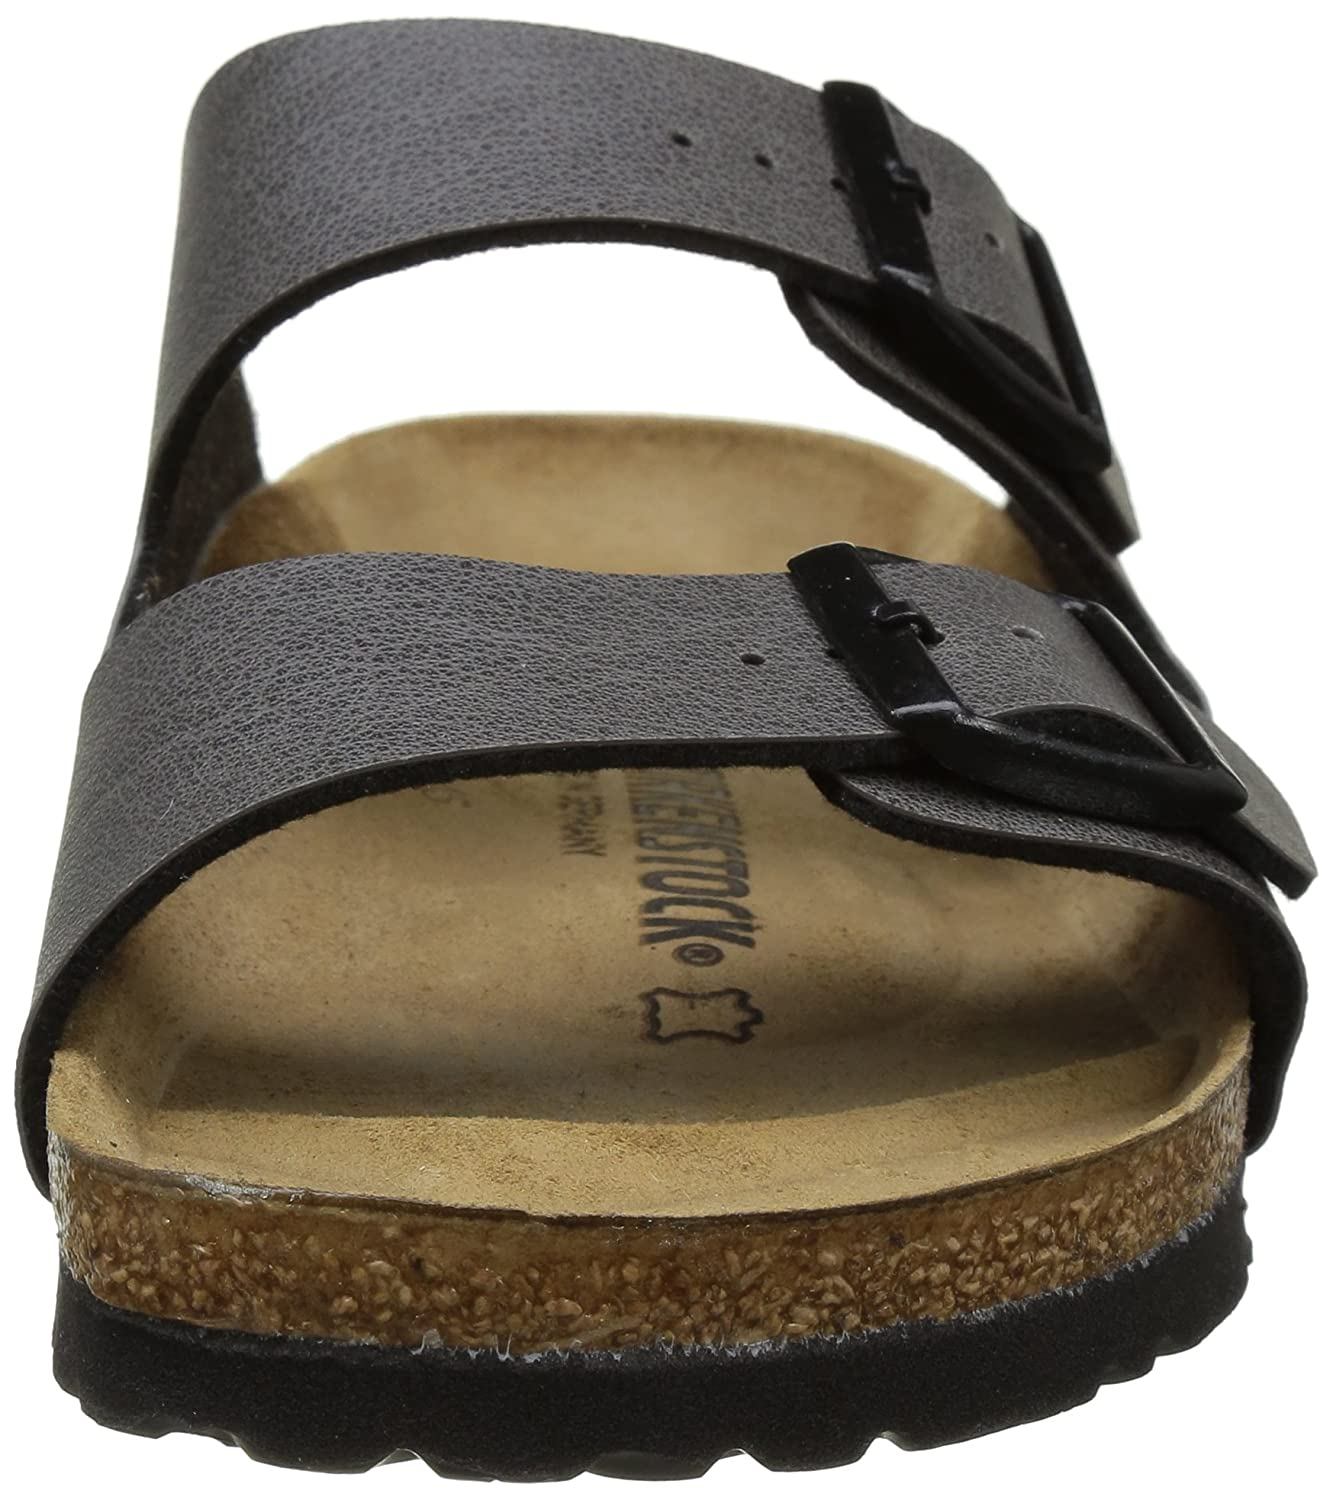 Birkenstock Arizona Anthracite Womens Leather Sandals Shoes B01FI0SJE0 40 EU (Narrow)|Pull Up Anthracite